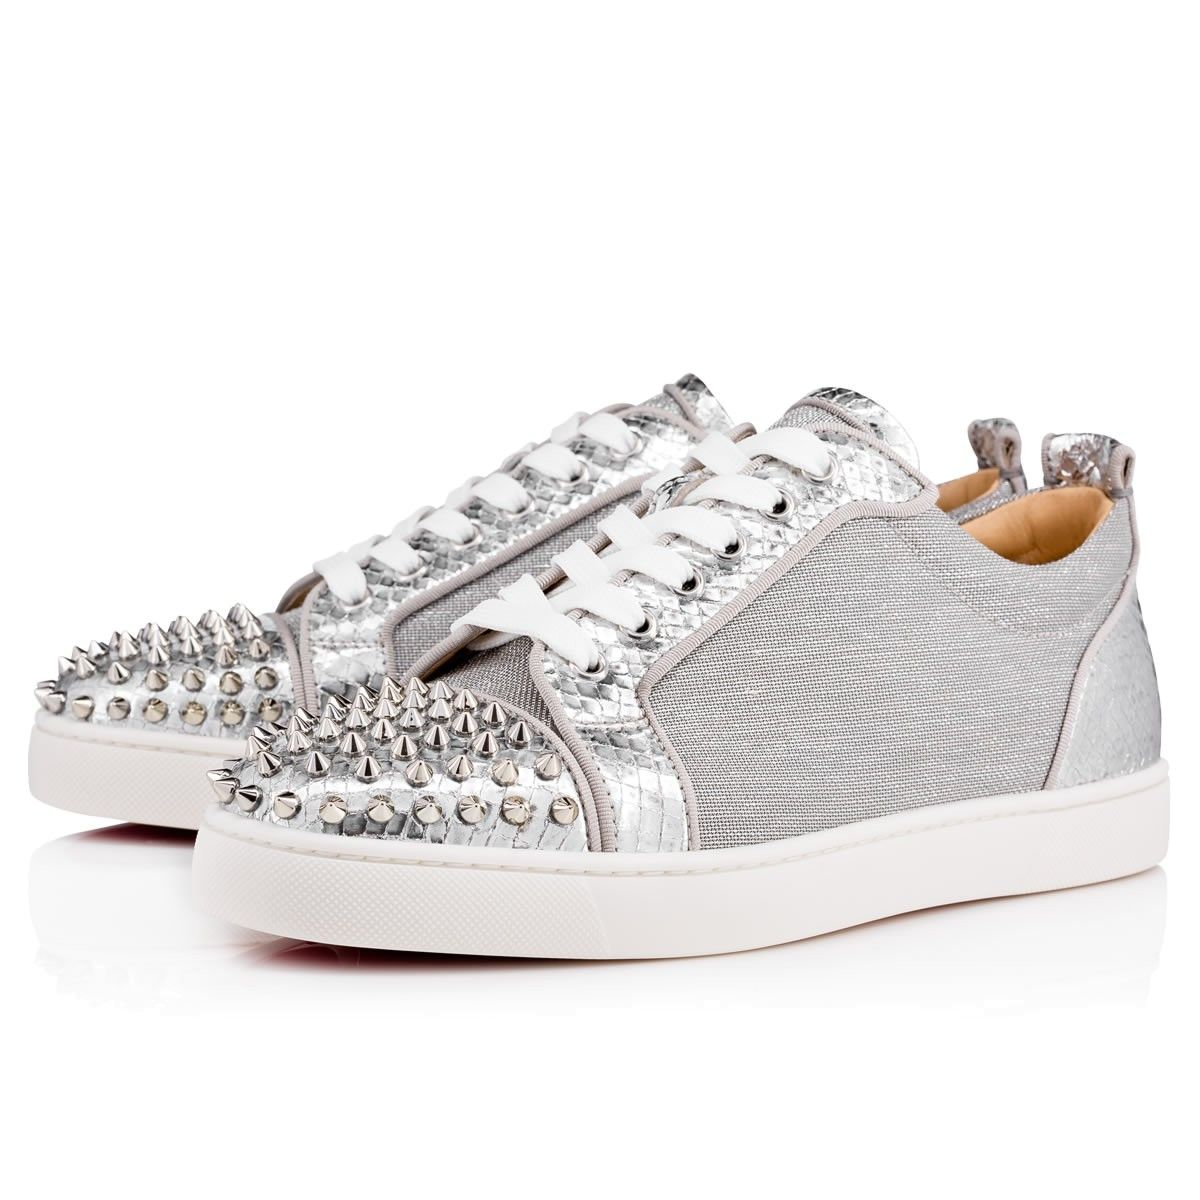 e779e5e2a6ff5 Men Shoes - Louis Junior Spikes Flat Lame Sire/jute Lame/gg Cotton - Christian  Louboutin